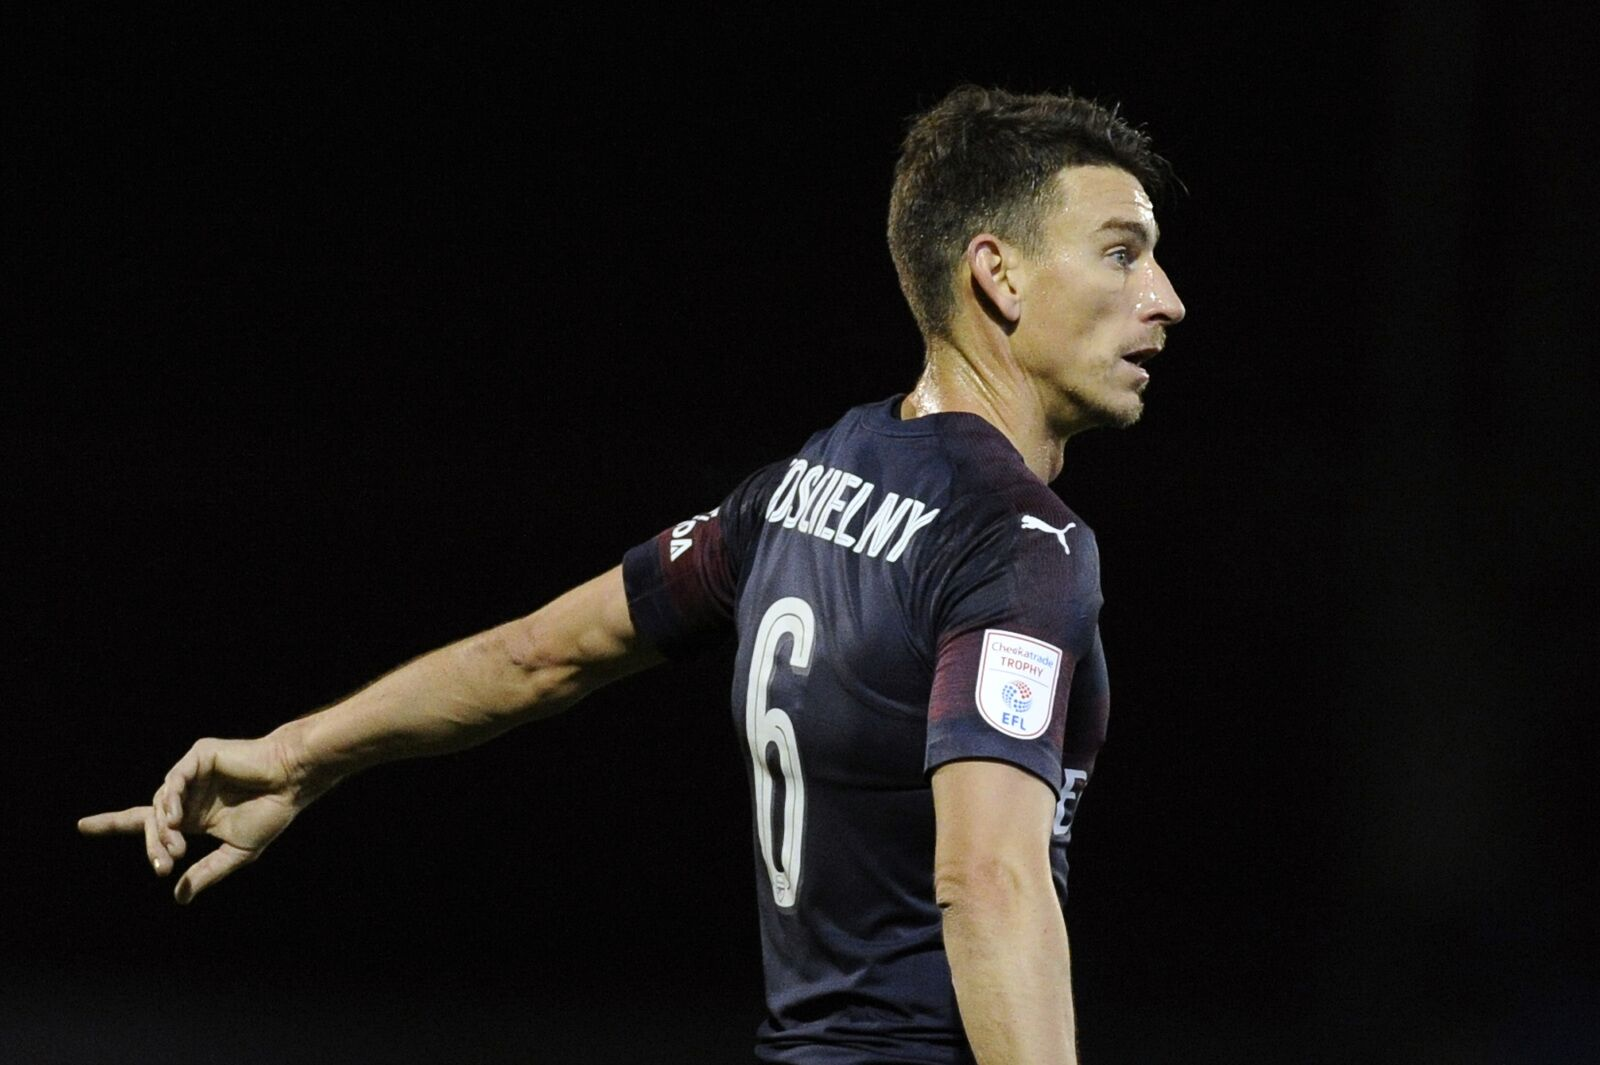 Captain Laurent Koscielny Angers Arsenal by Attempting to Force Exit